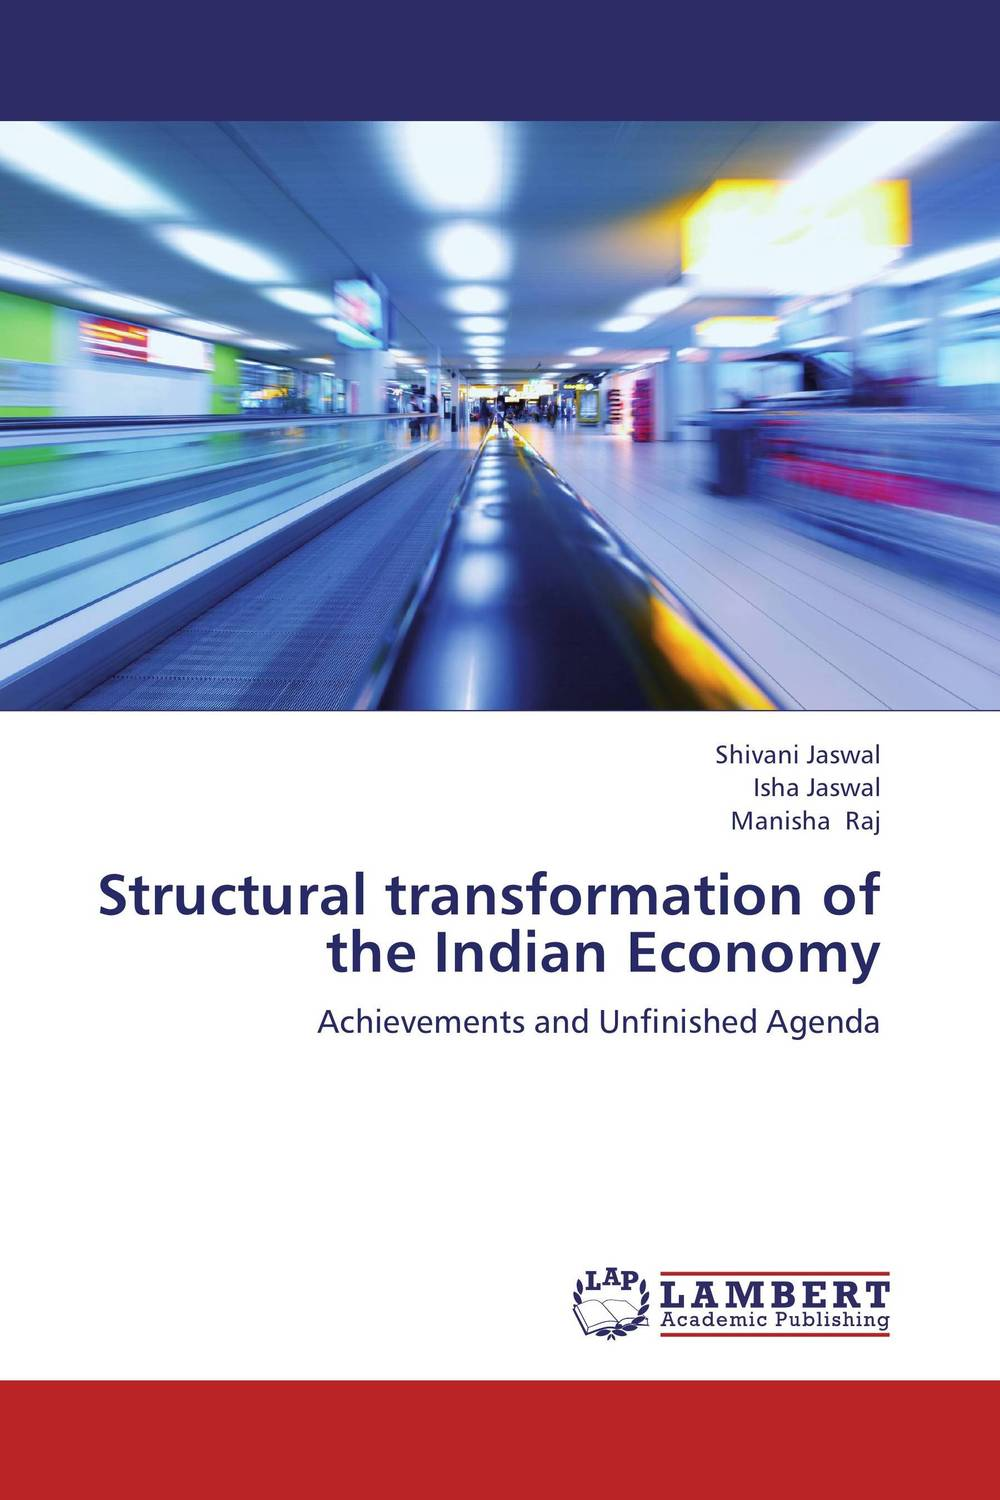 Structural transformation of the Indian Economy economic reforms and growth of insurance sector in india